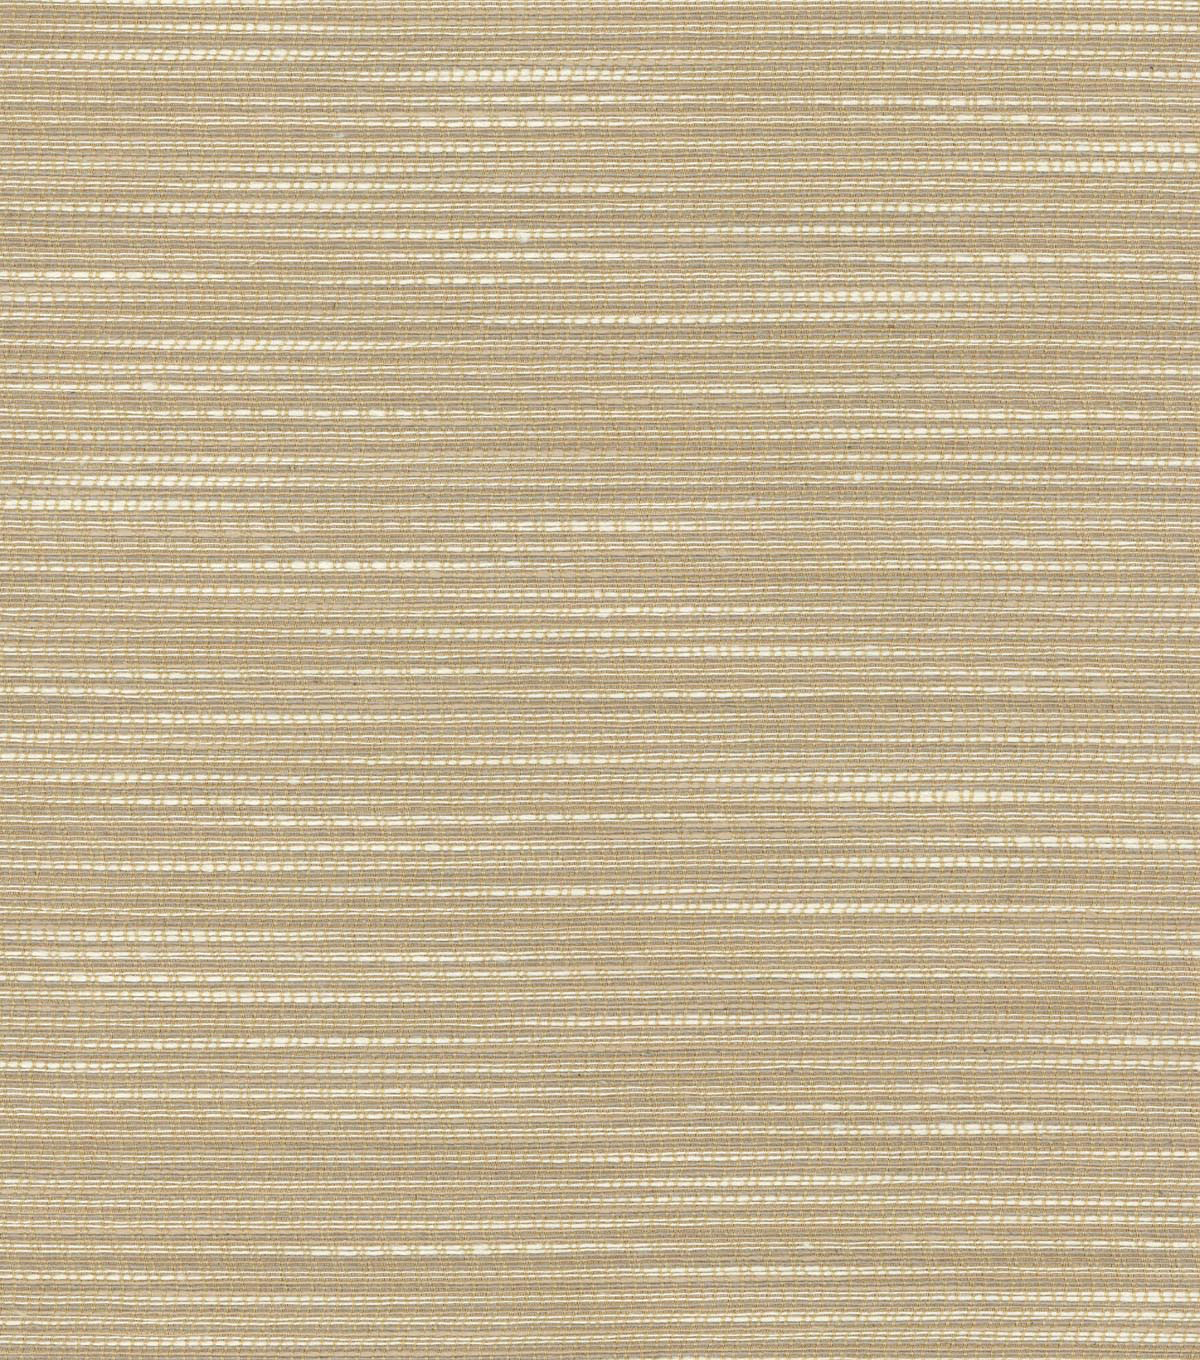 "Home Decor 8""x8"" Swatch Fabric-PK Lifestyles Shimmy Driftwood"